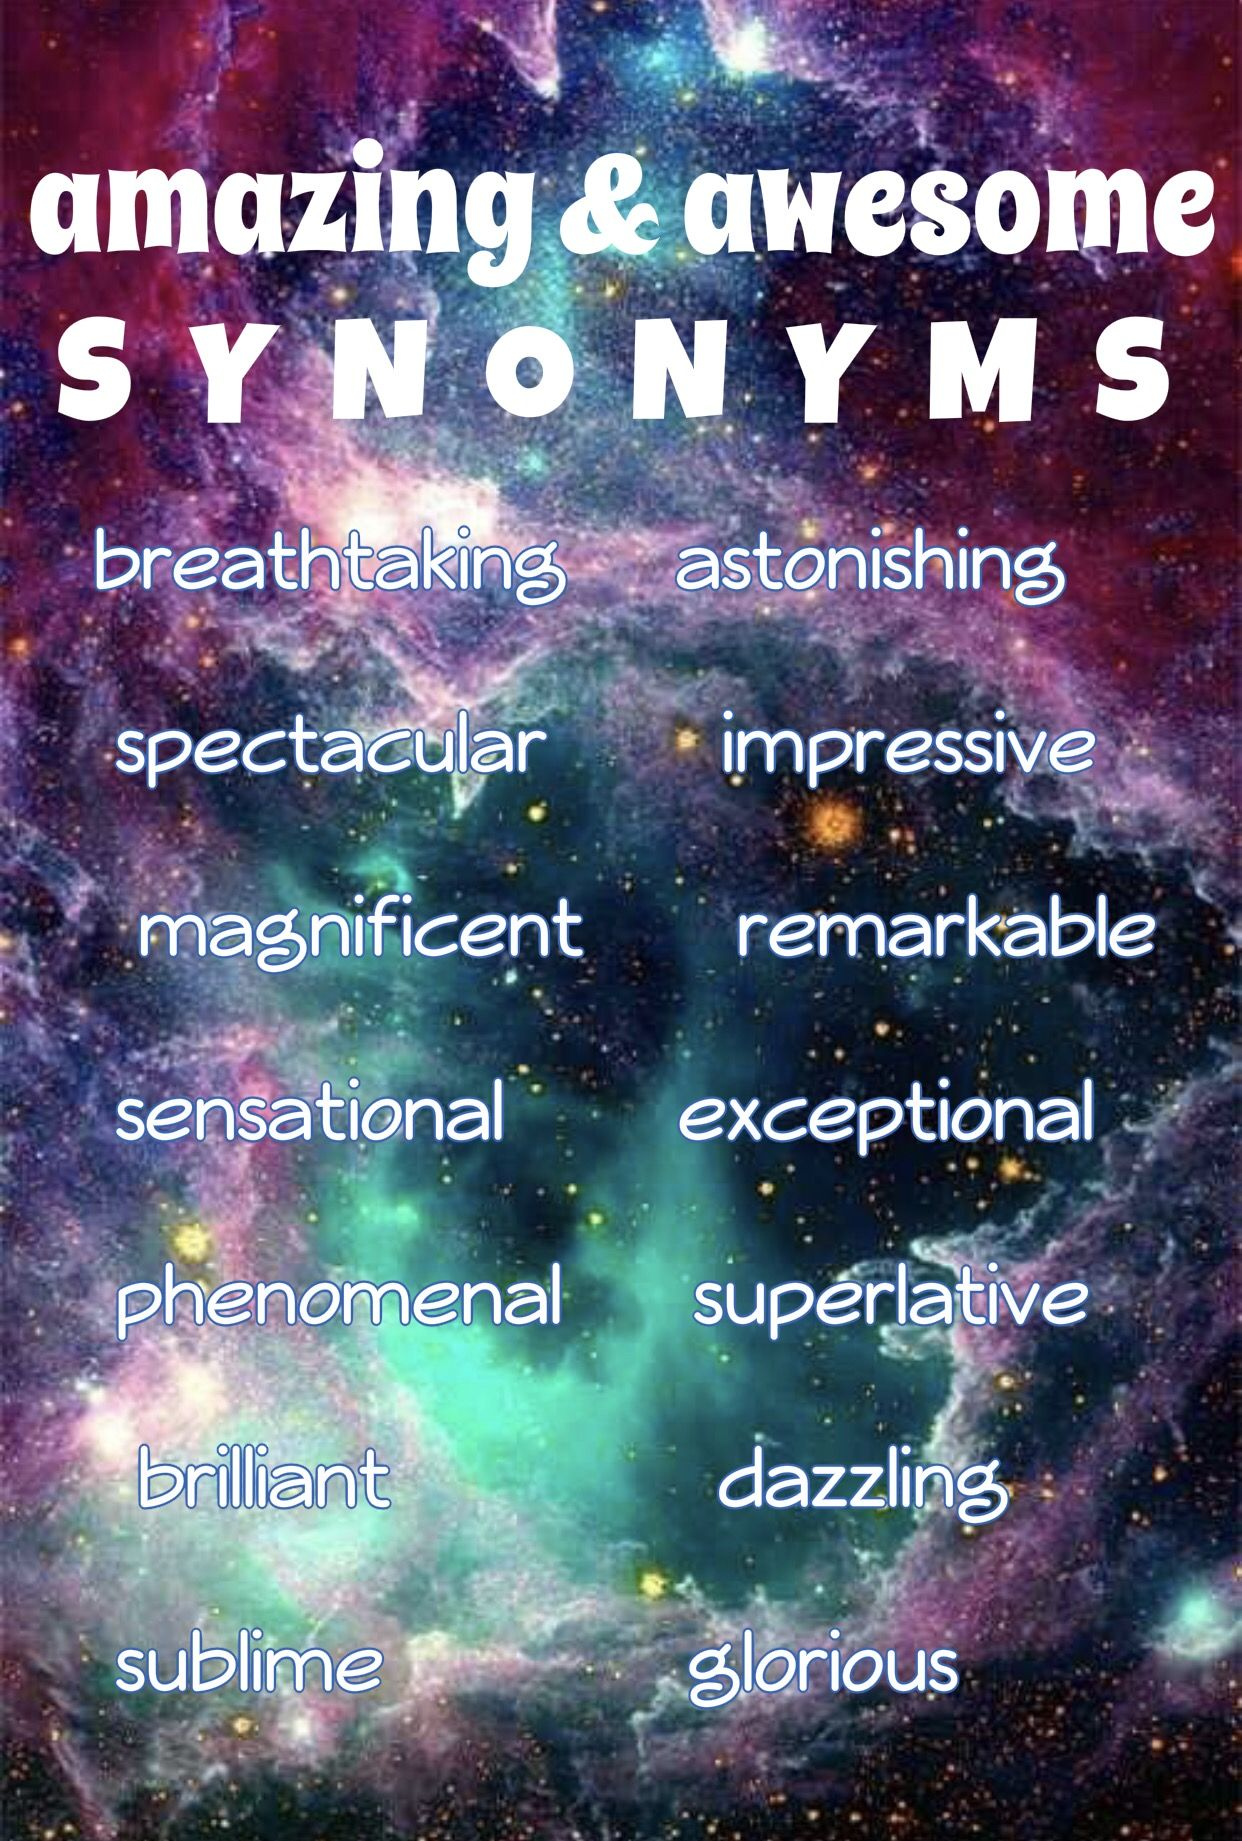 amazing and awesome SYNONYMS as in Jehovah is the superlative artist